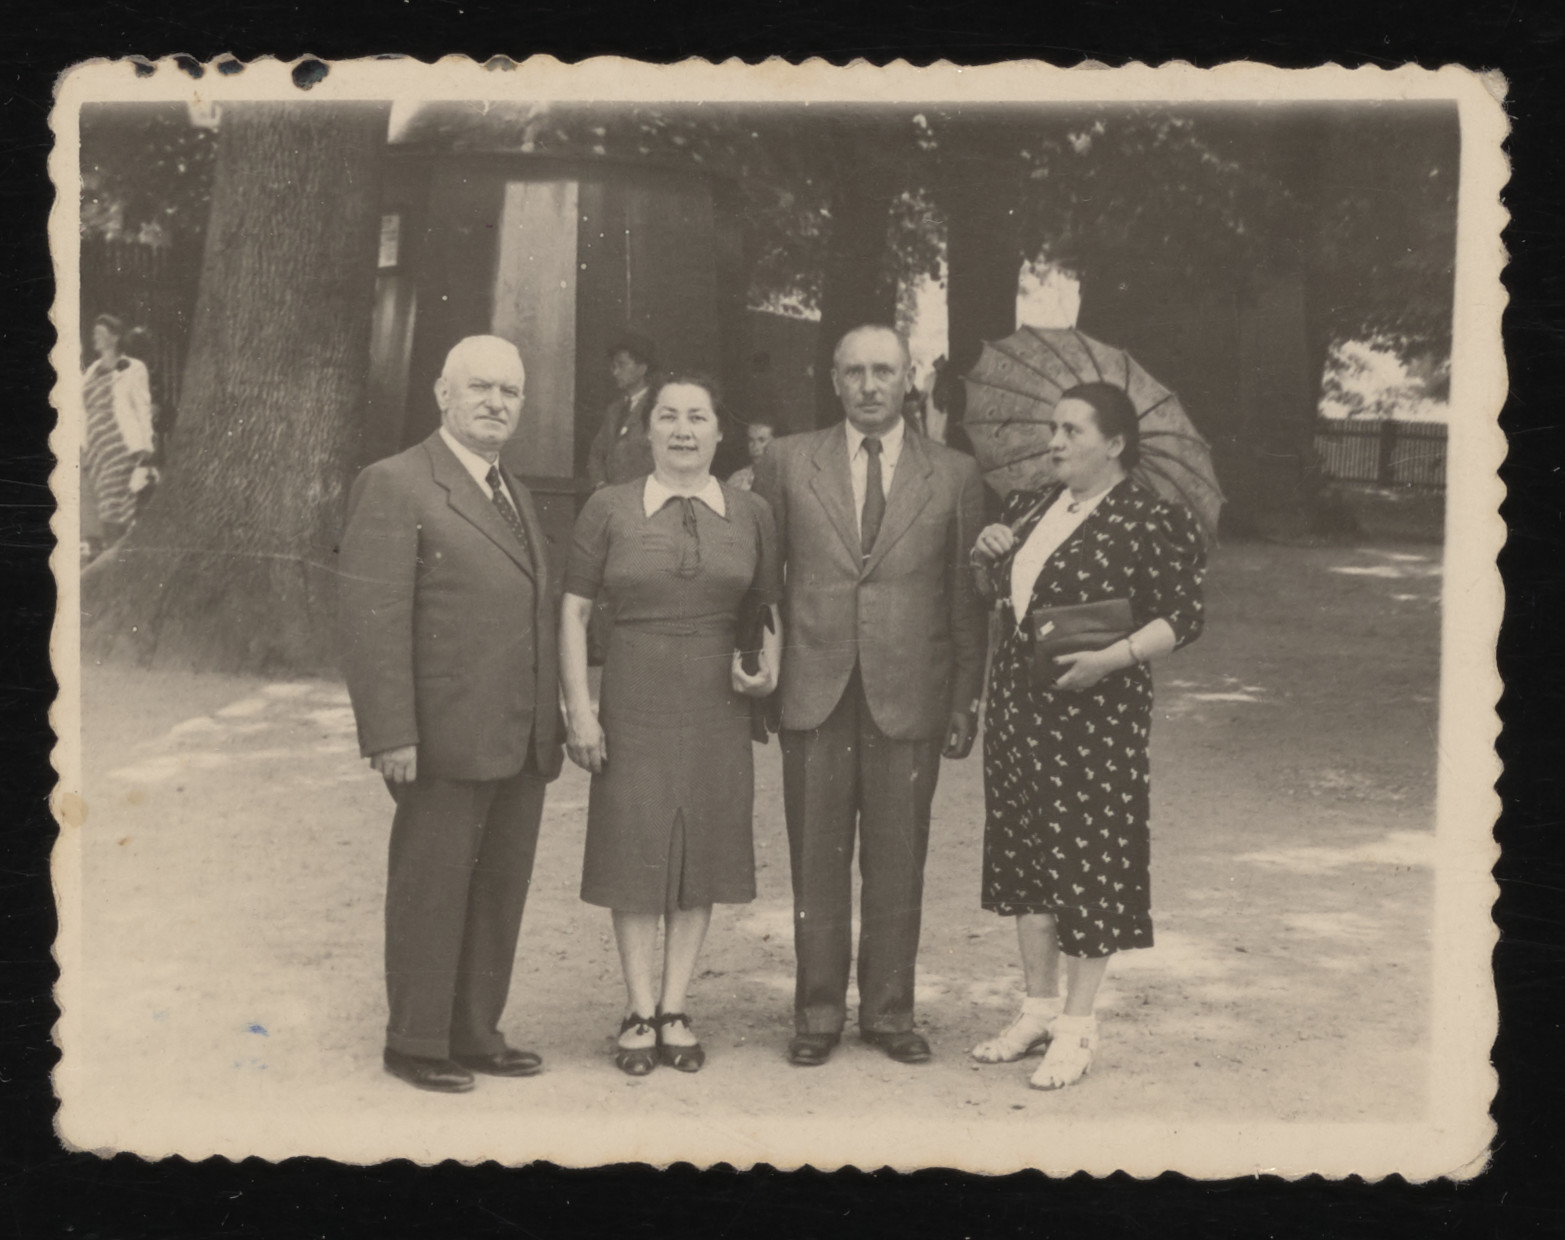 Rozalia and Naftali Tabaczynski (center) pose with their friends, the Ryczkes (from Konin), at a spa in Truskawiec, a few weeks before the German invasion.